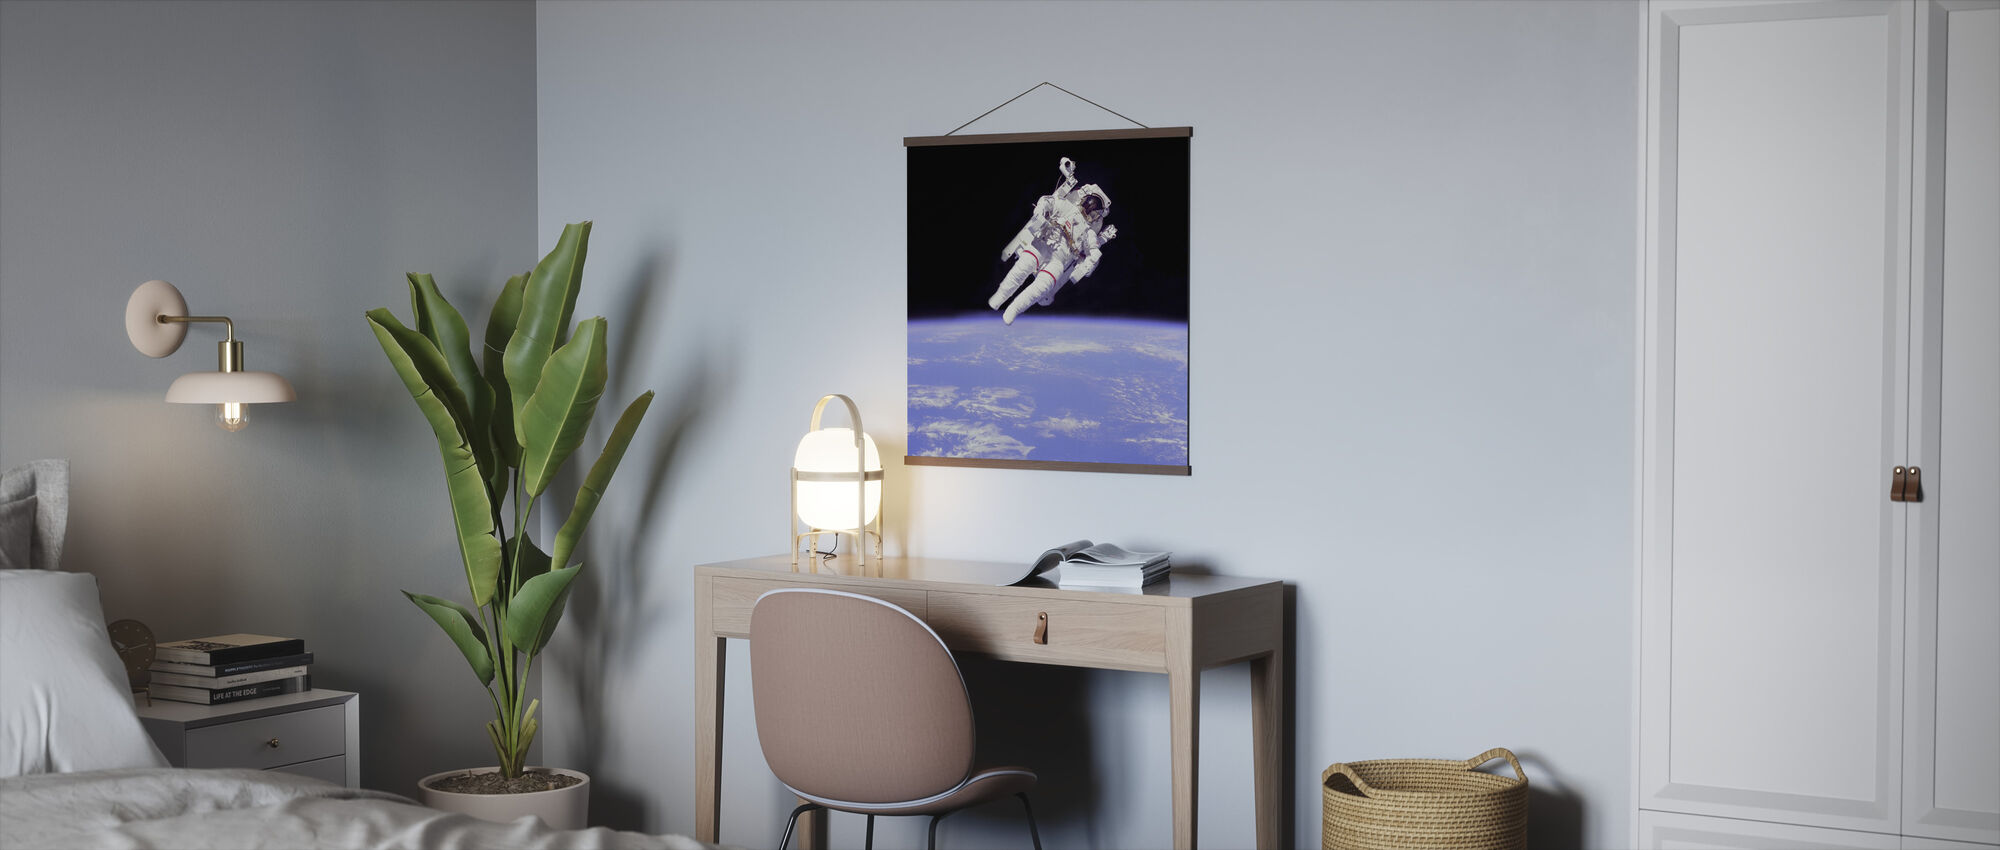 Astronaut - Poster - Office